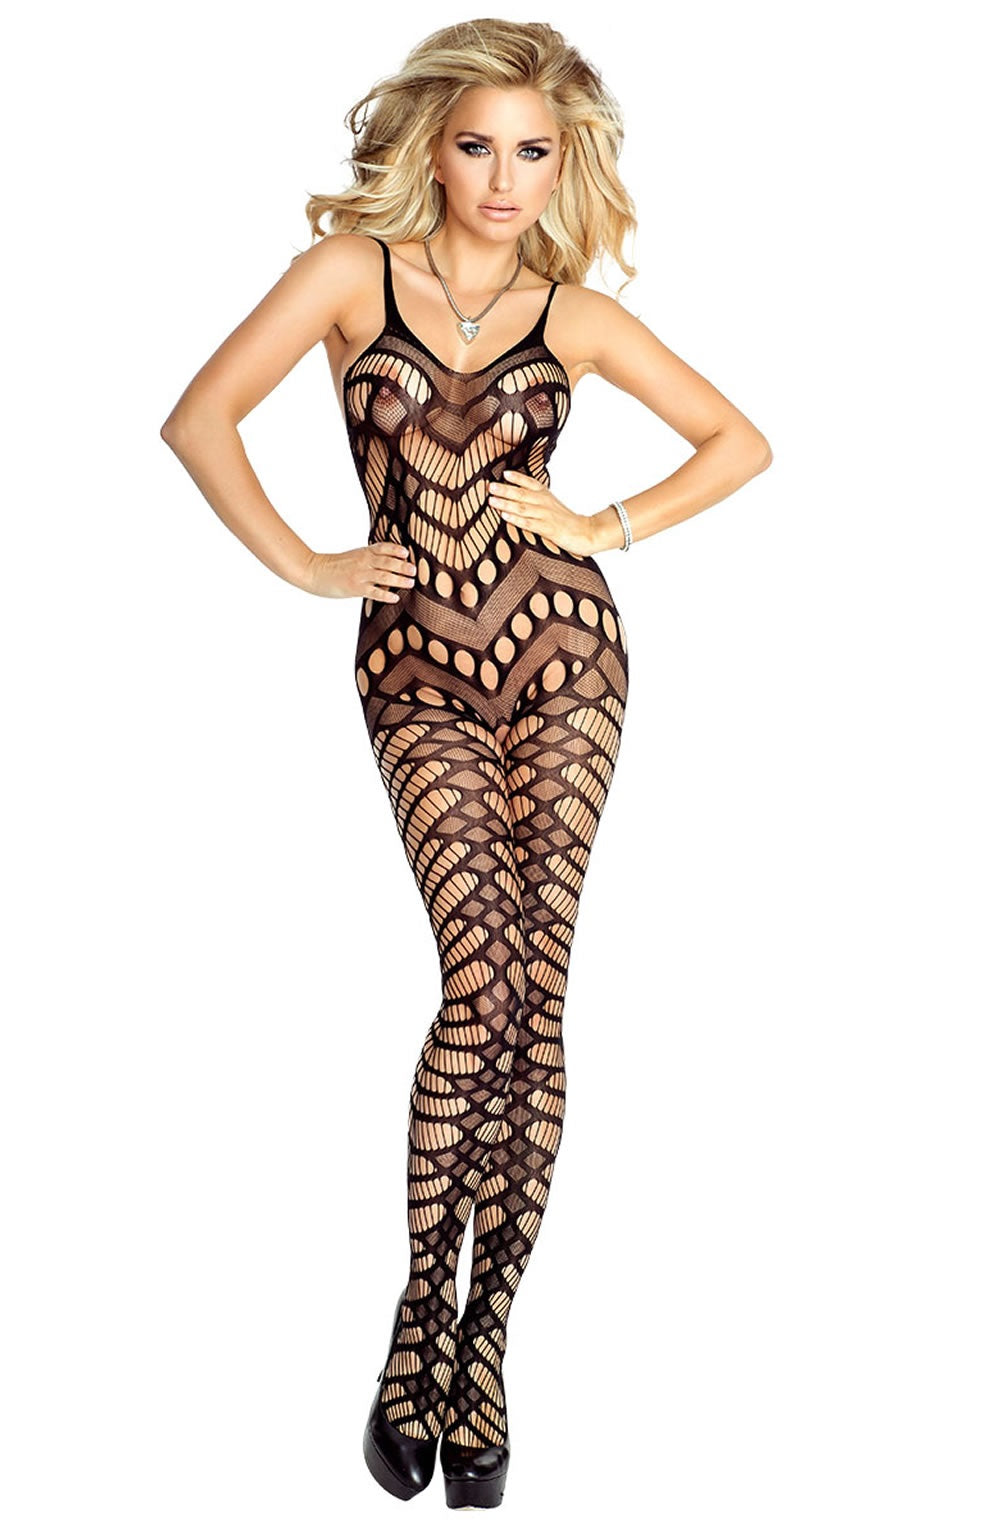 Provocative Black Open Cut Patterned Bodystocking